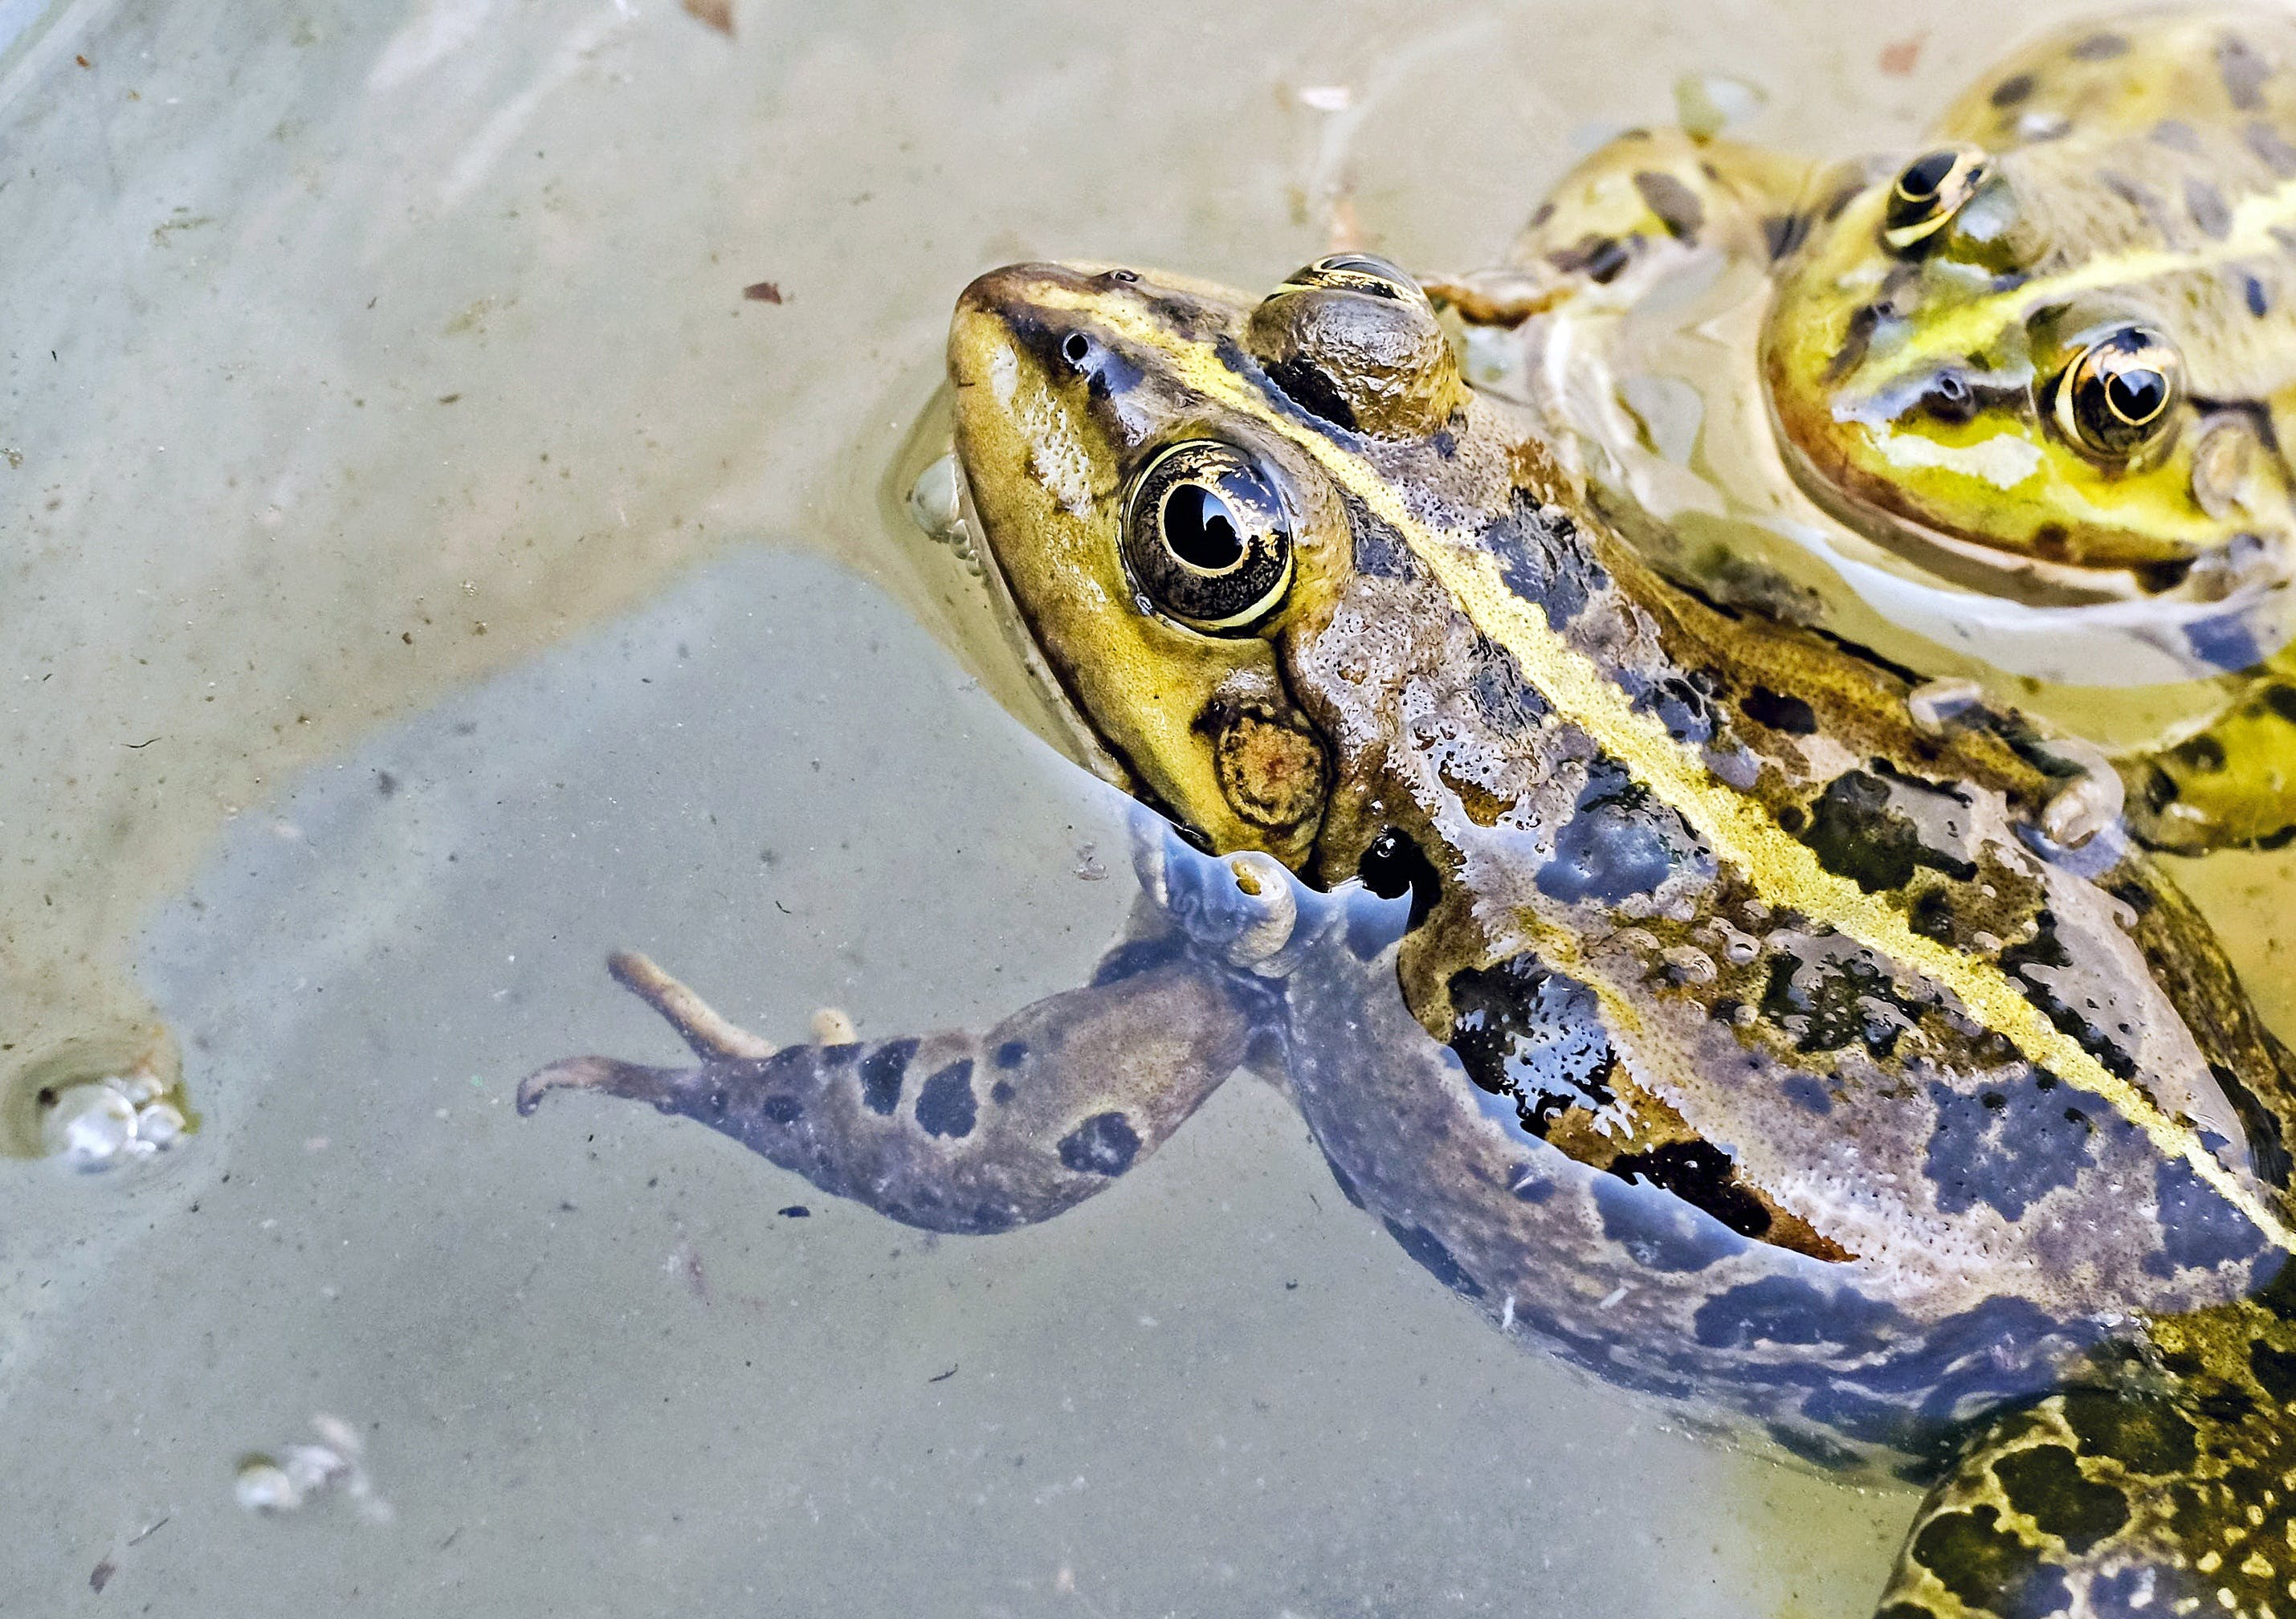 Two Brown-and-green Frogs in Water